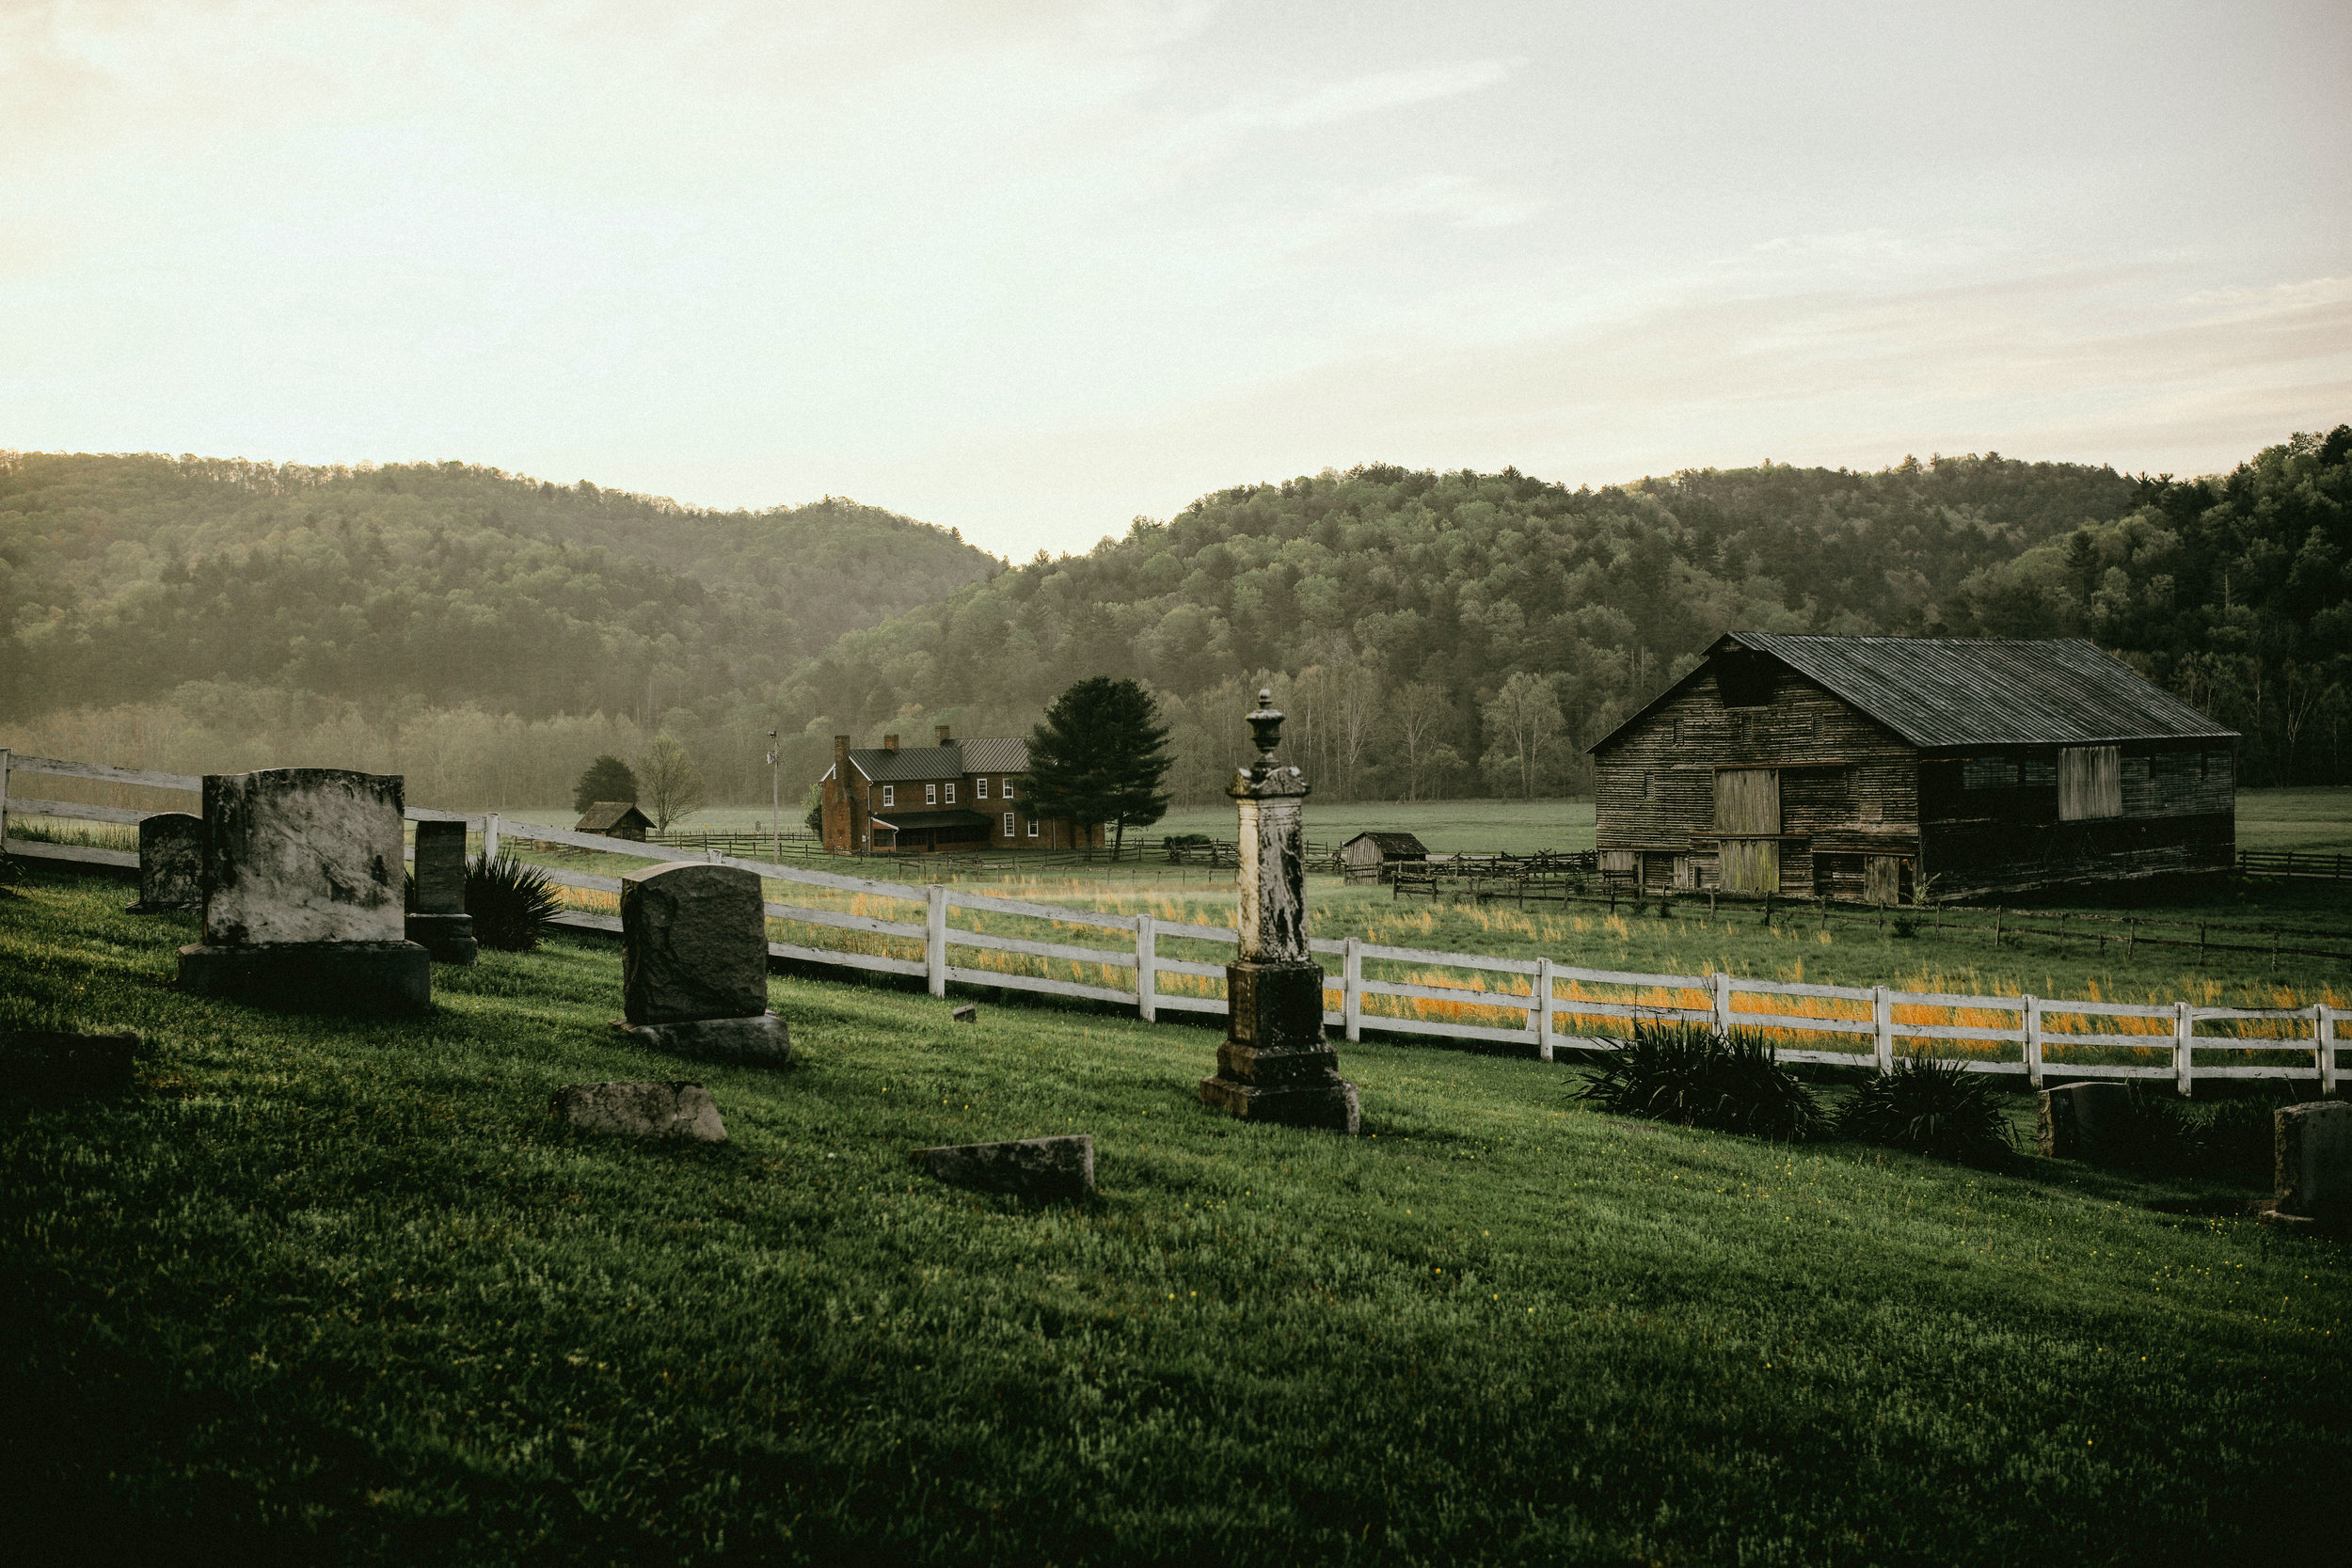 pictured above: overlooking the historic McClung House and Farm from inside the Clover Creek Presbyterian Church graveyard.